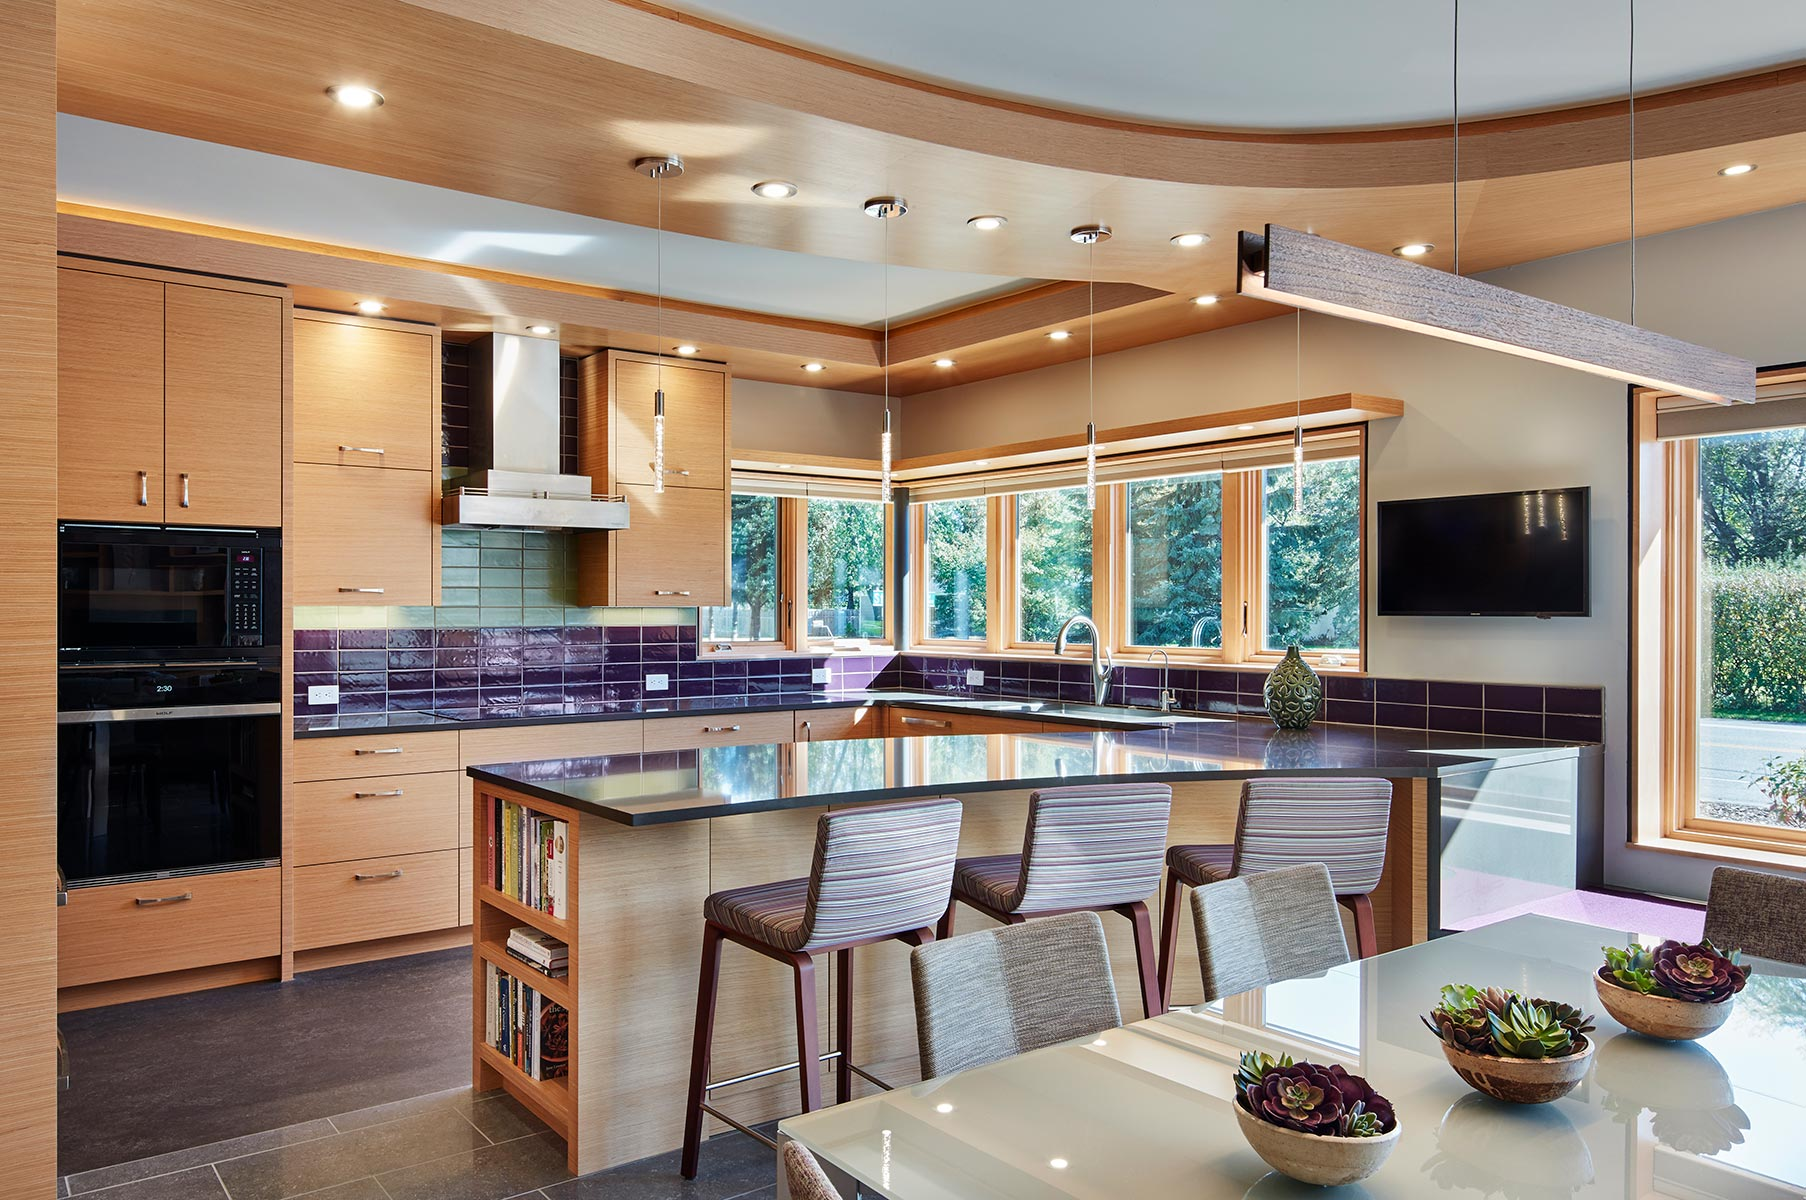 Energy exquisite lilu interiors - Suitable colors kitchen energy ...